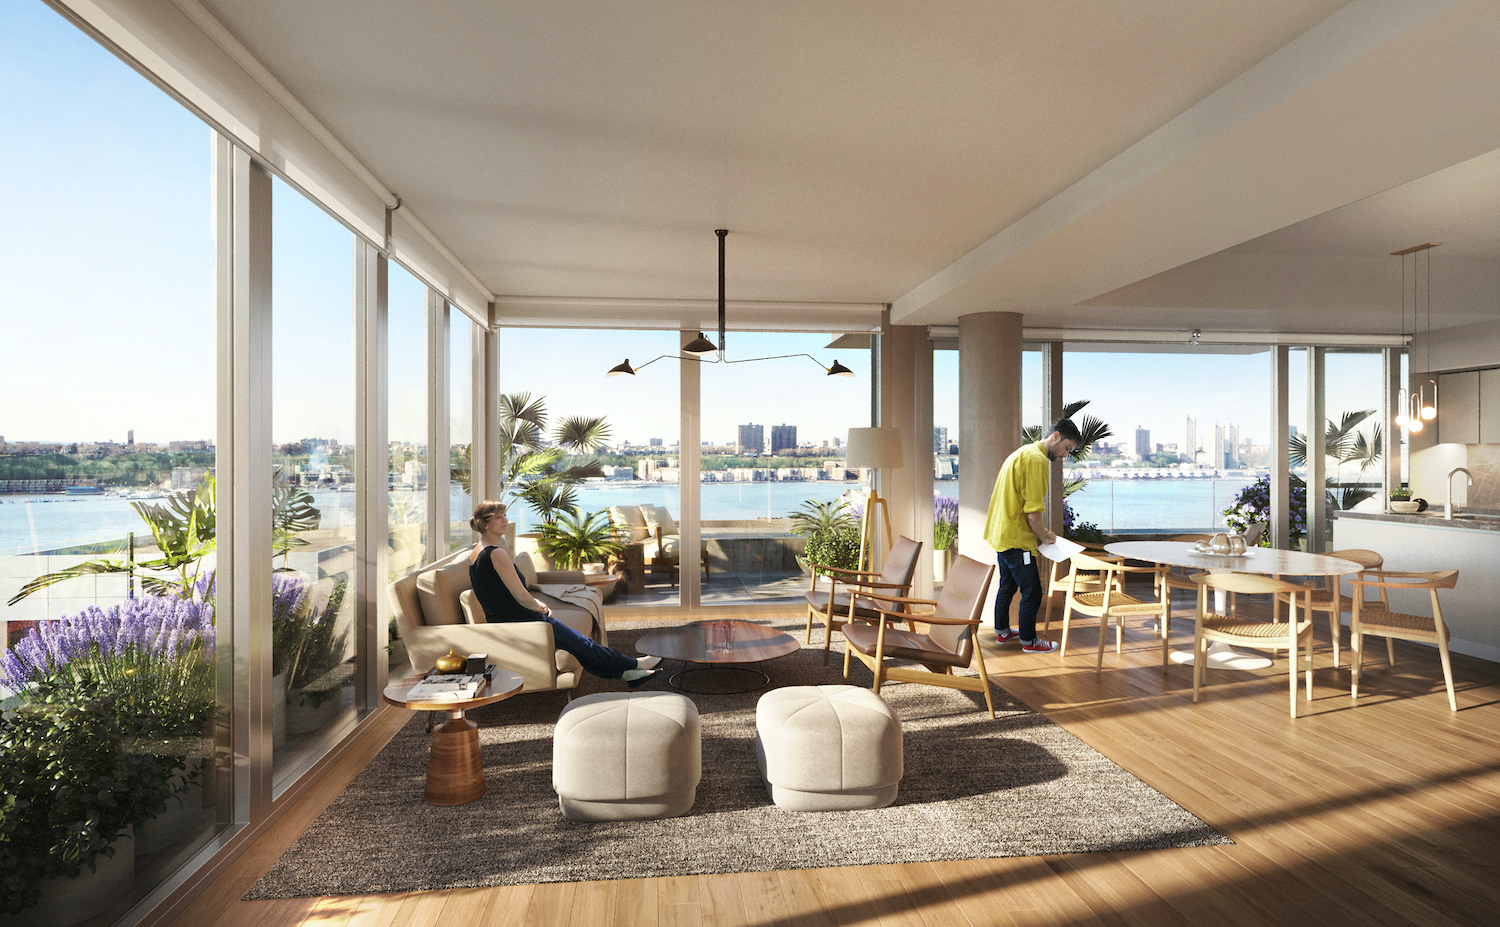 Residential unit at The West. Rendering courtesy of VUW